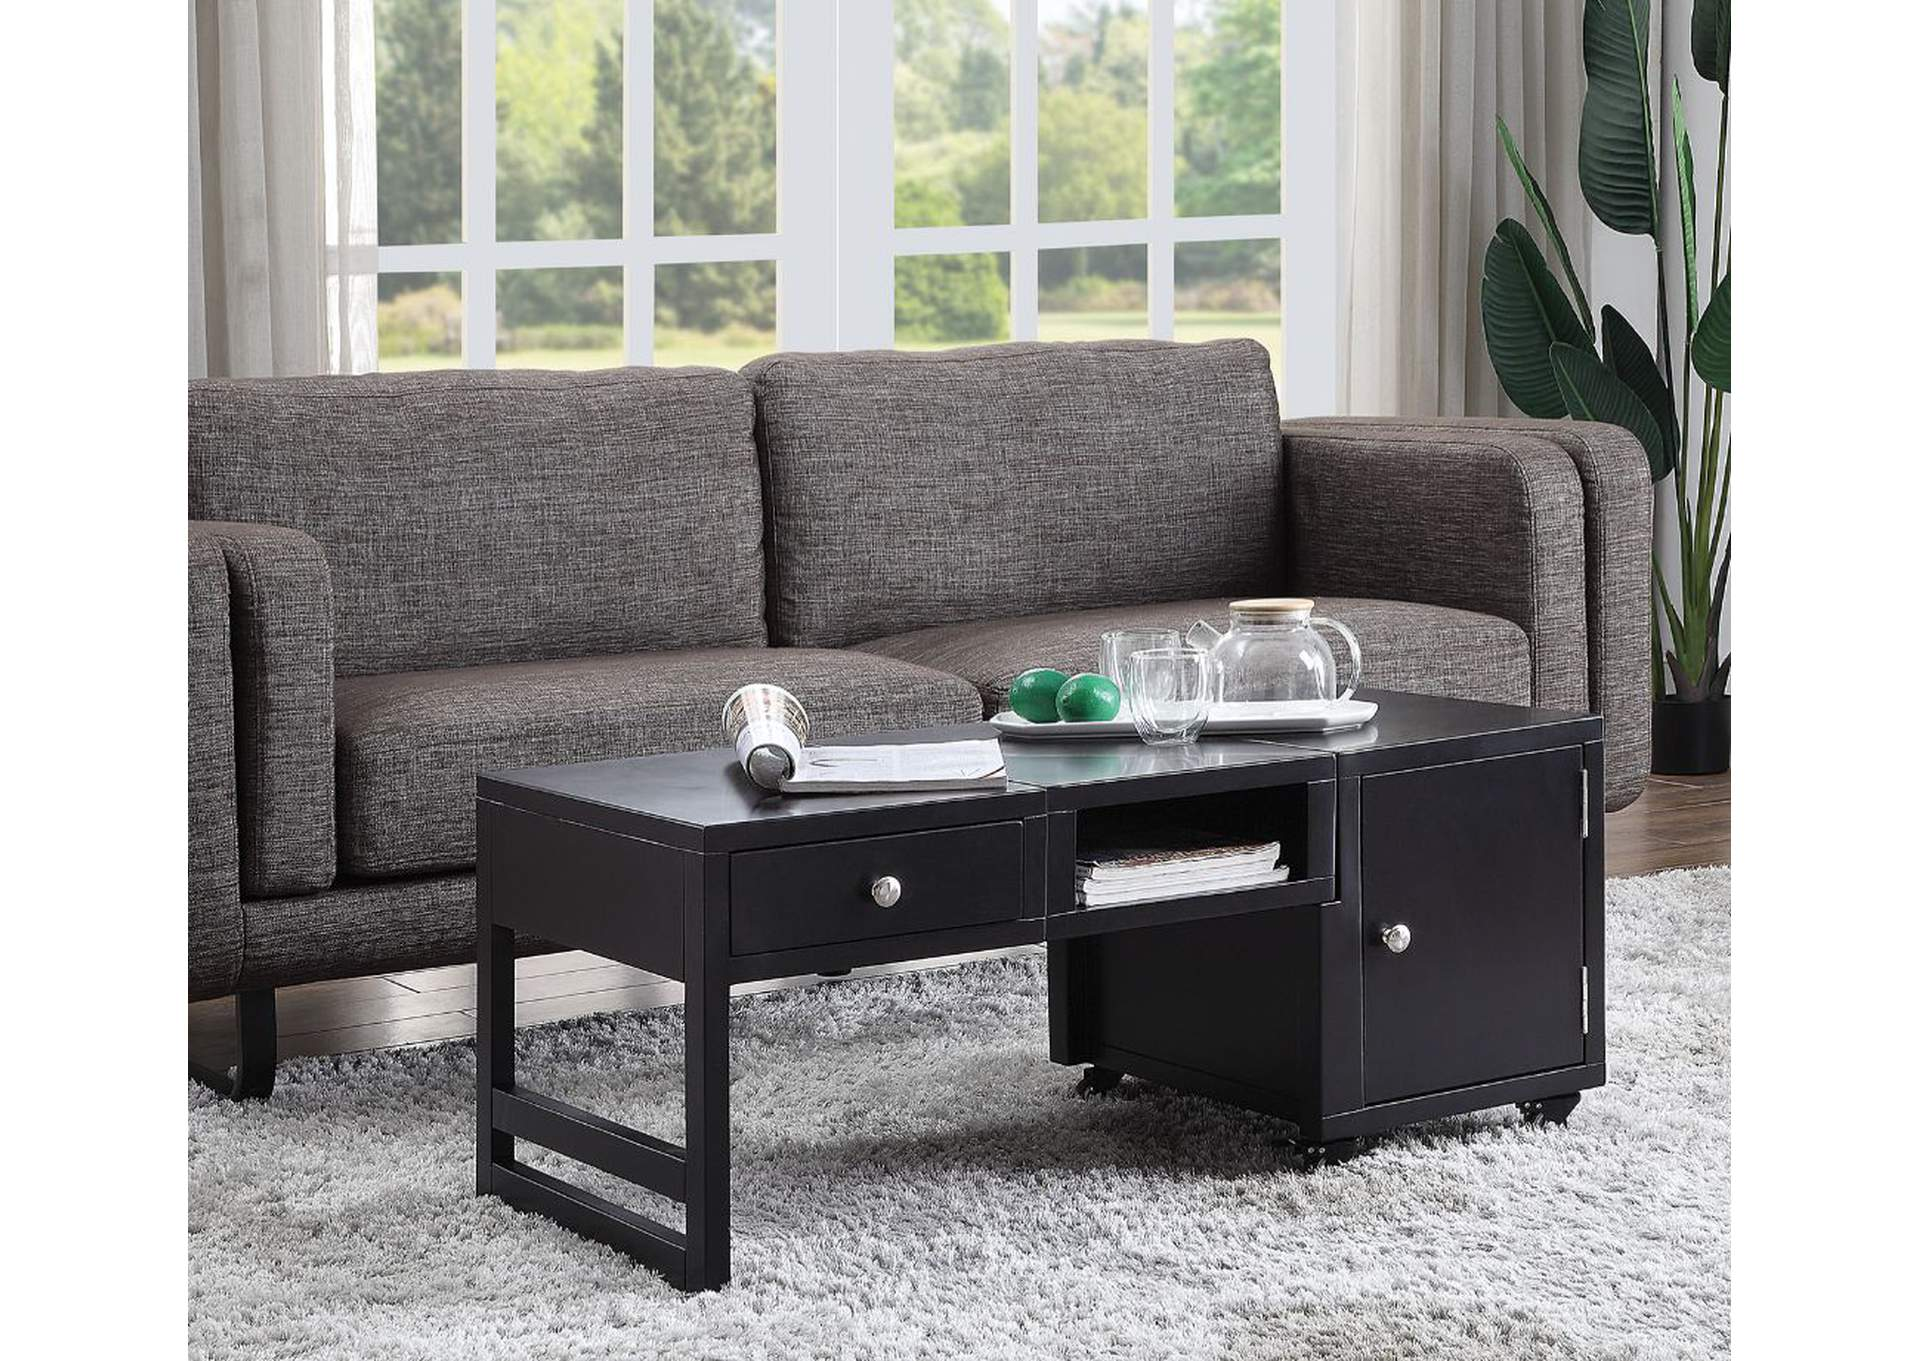 Machiko Black Coffee Table,Acme